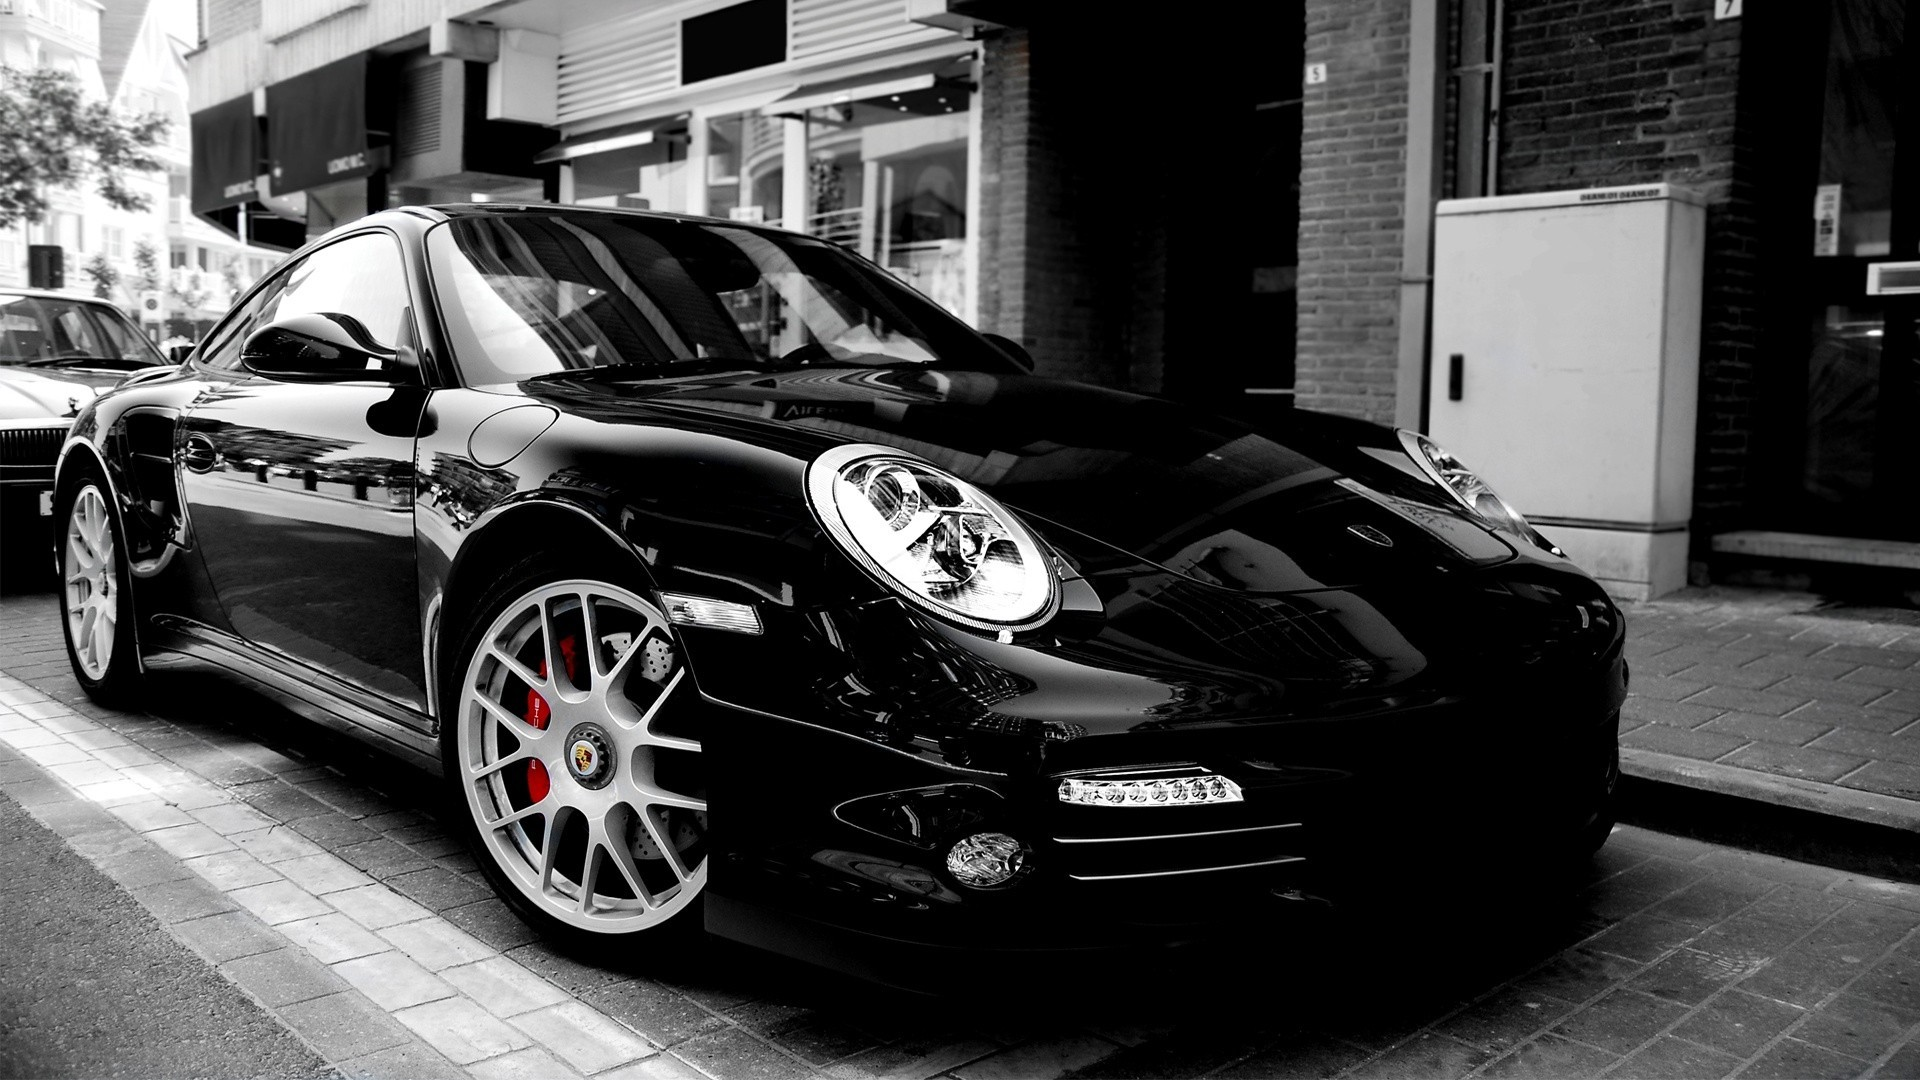 black cars Porsche cars HD Wallpaper